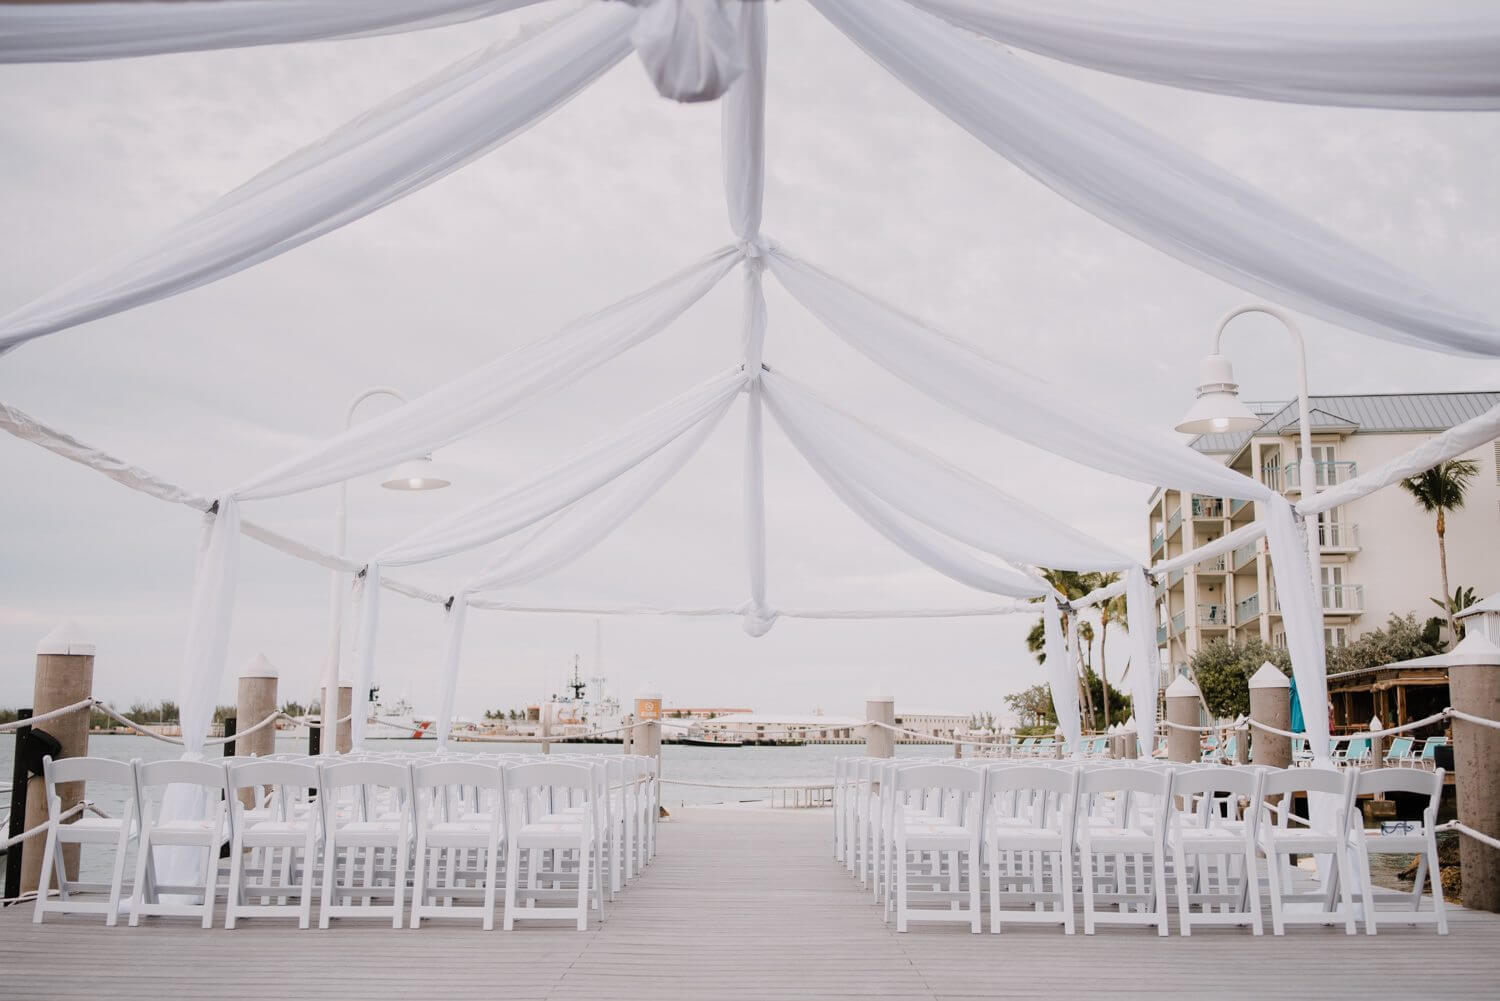 Key West wedding photos hyatt centric key west simply you weddings